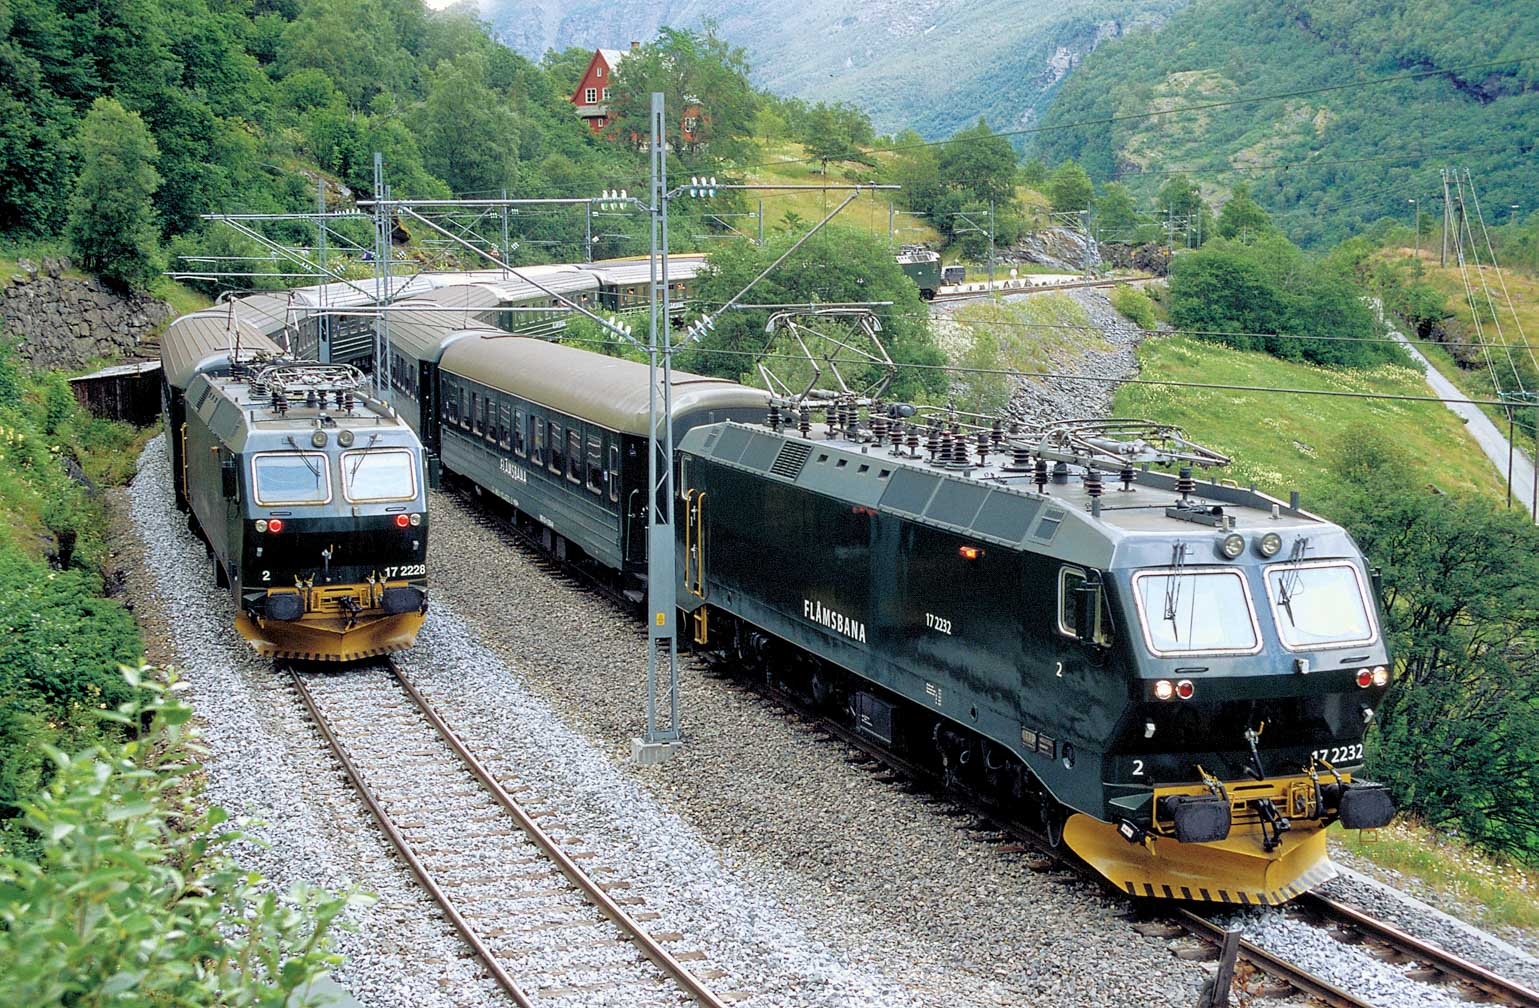 Exterior of two Flam Railway trains